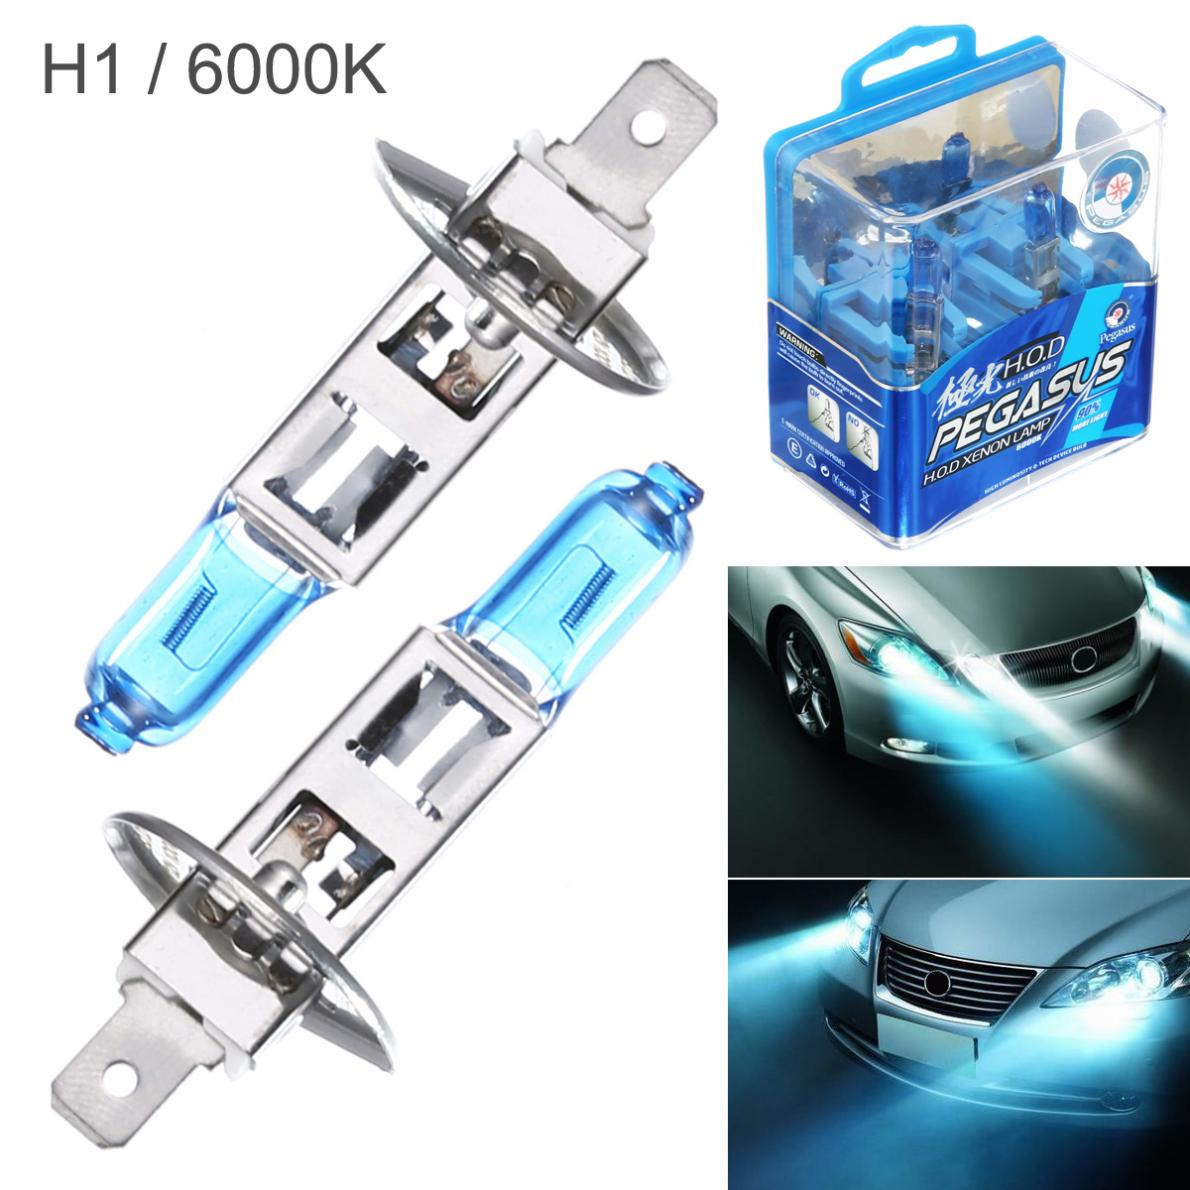 цена на 2pcs H1 H3 H4 9005 100W White Light Super Bright Car HOD Xenon Halogen Lamp Auto Front Headlight Fog Bulb